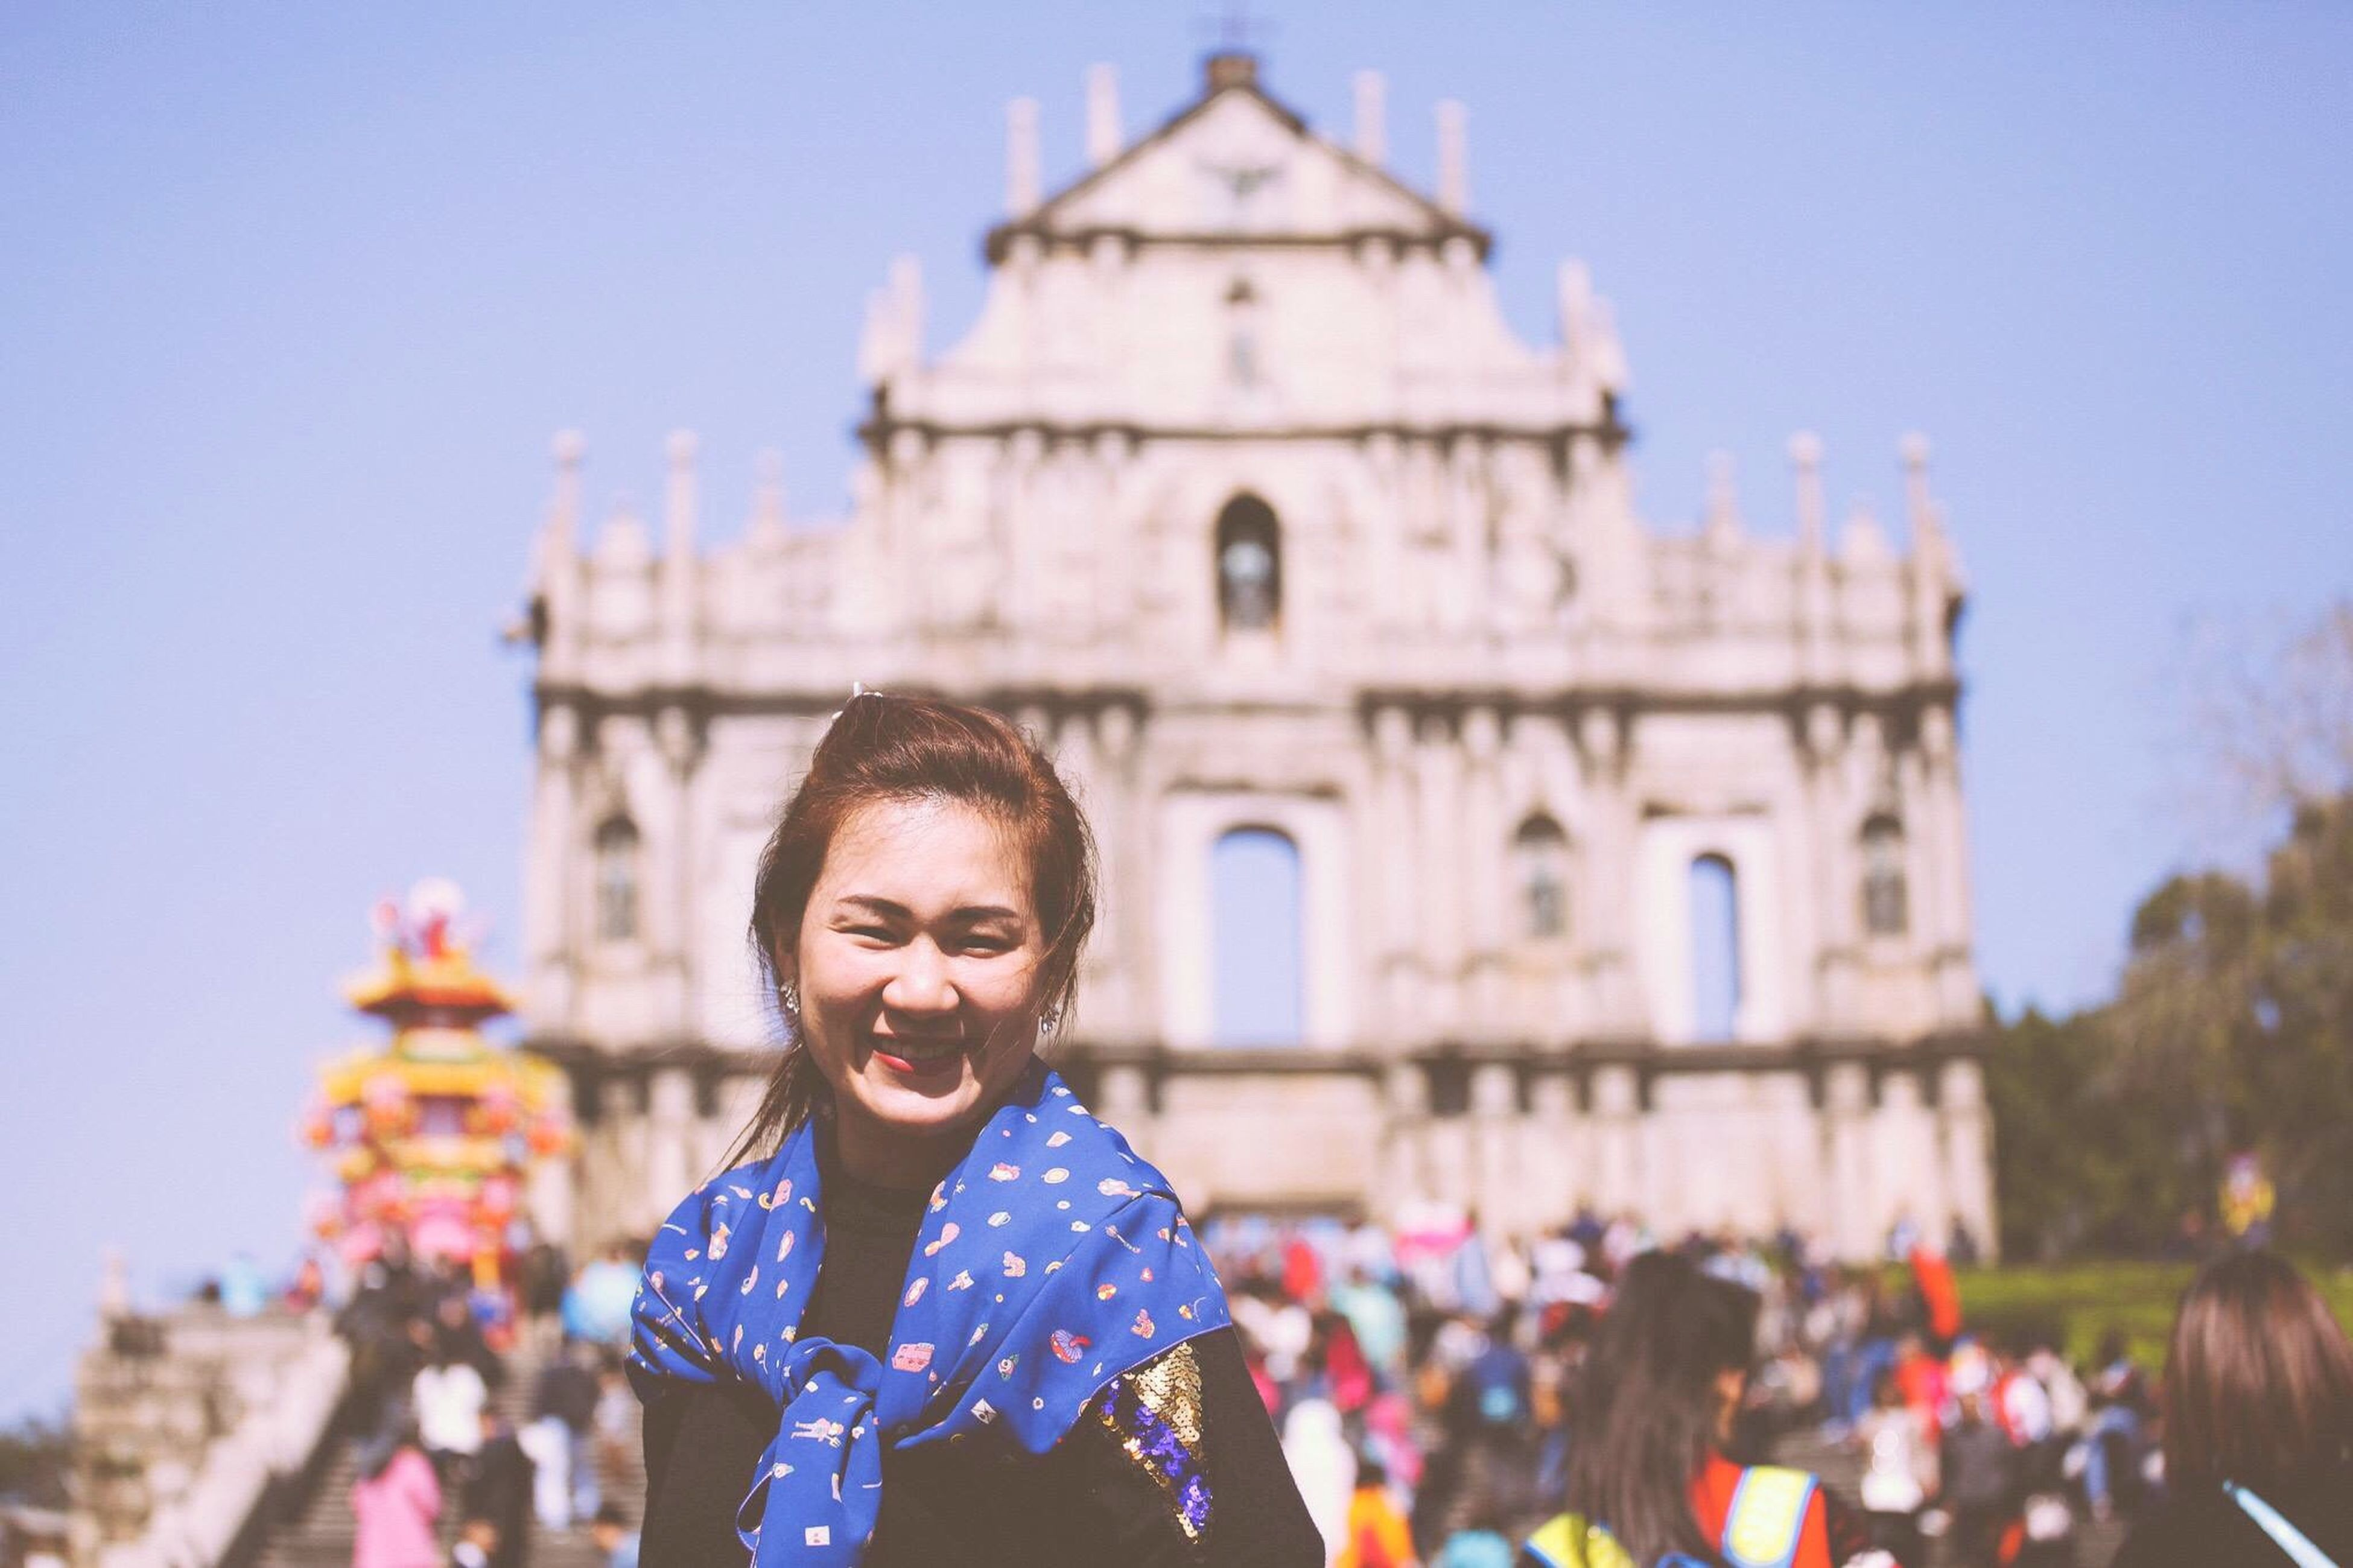 lifestyles, person, architecture, building exterior, leisure activity, portrait, looking at camera, built structure, young adult, smiling, front view, happiness, focus on foreground, casual clothing, headshot, religion, standing